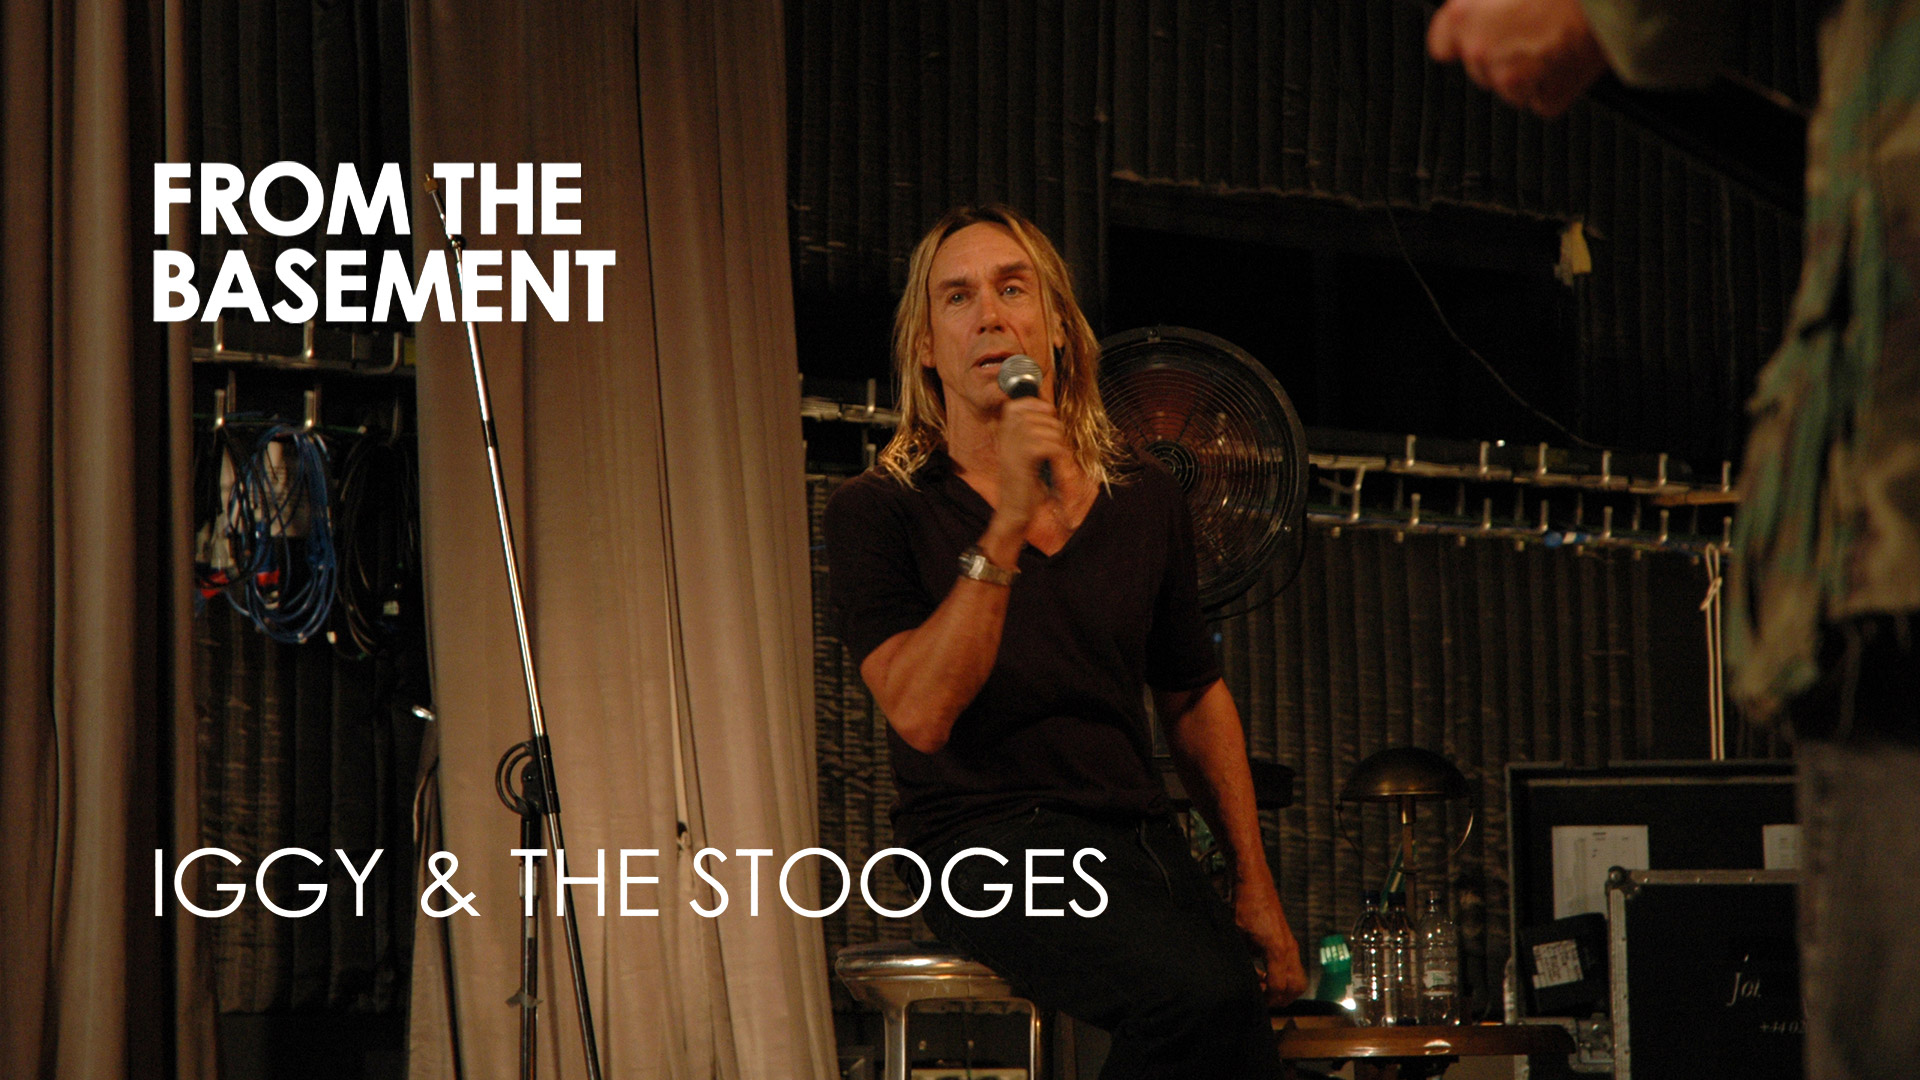 Iggy and the Stooges - From the Basement